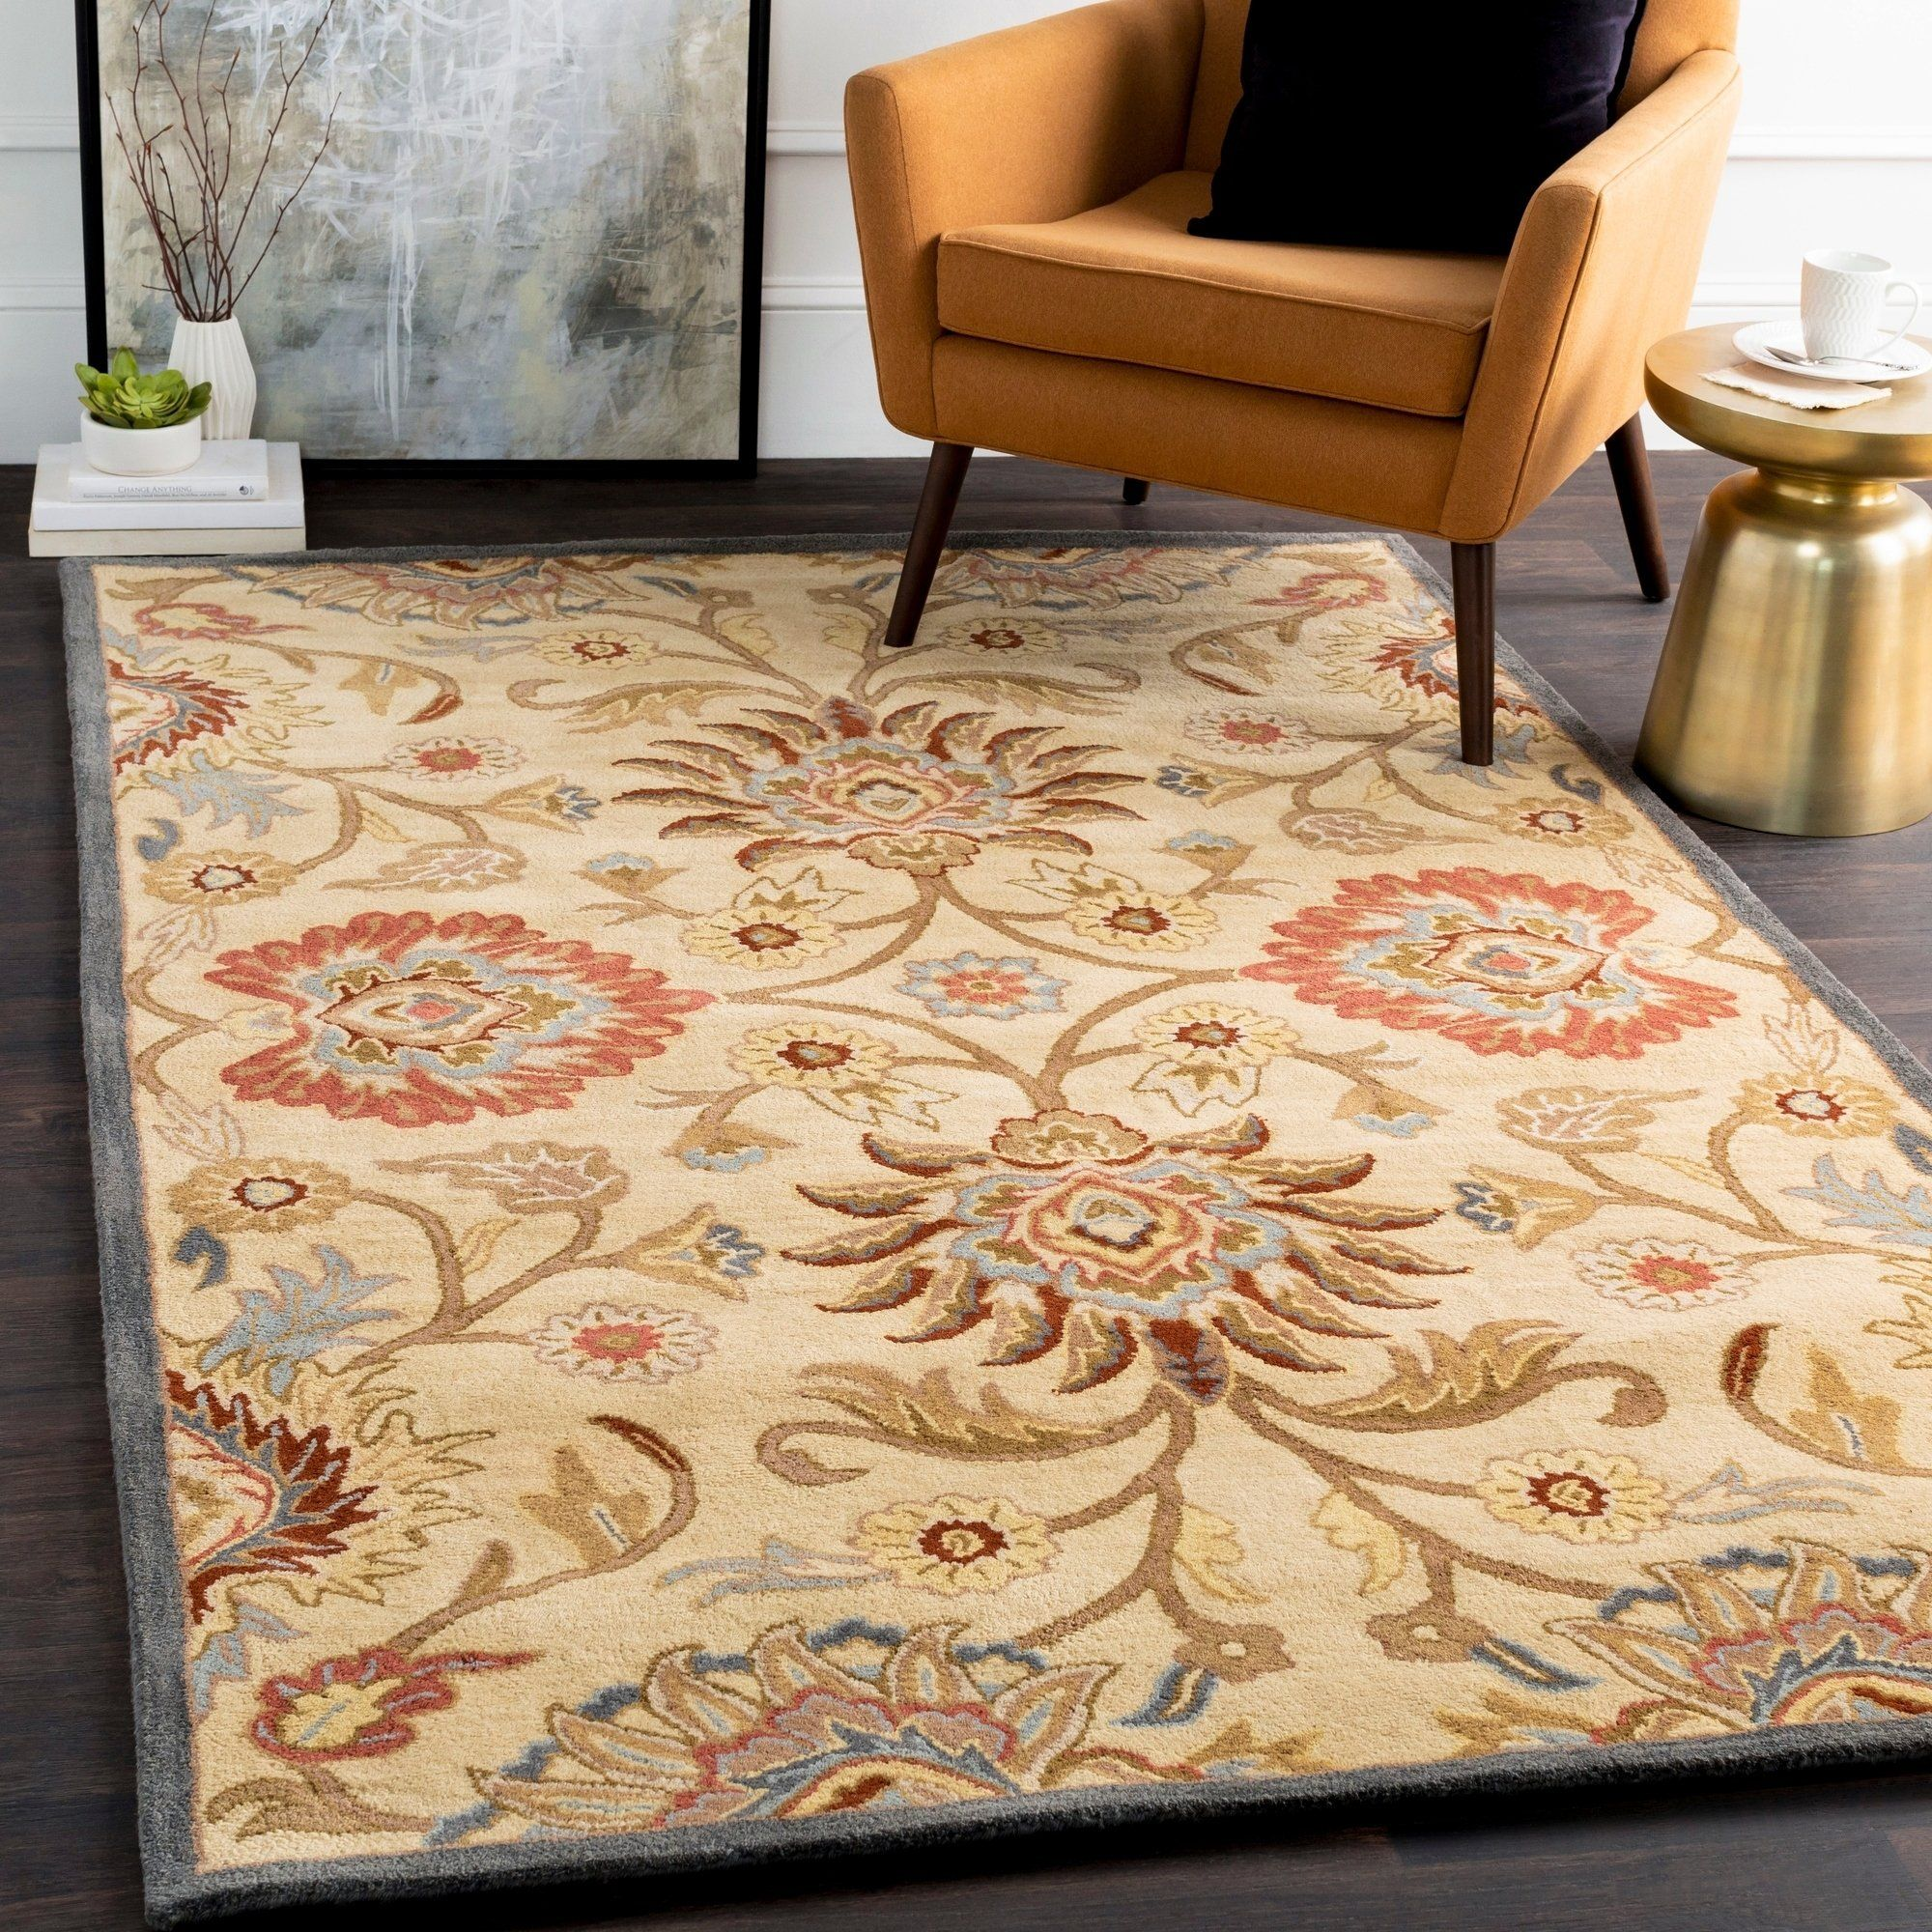 Hand Tufted Traditional Wool Area Rug 5 X 6 3 Shaped Wheat